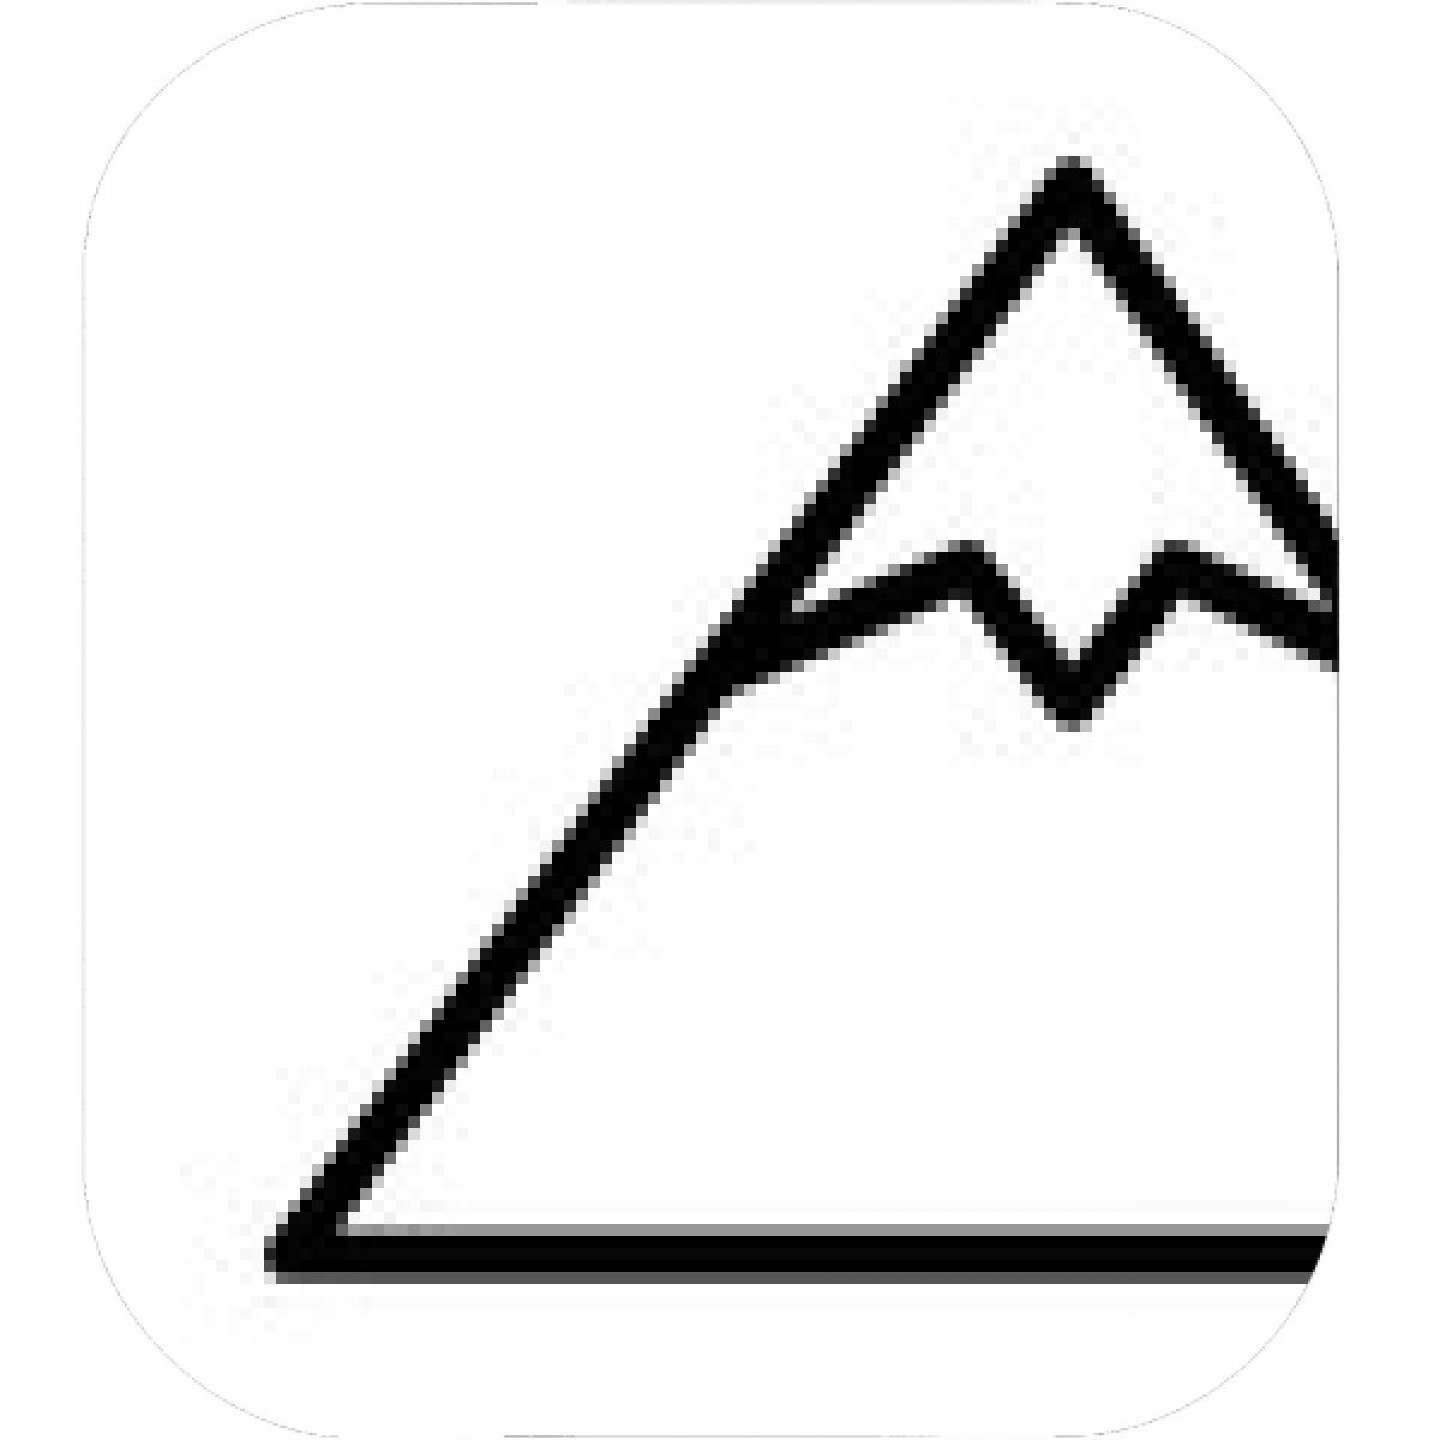 Black and white clipart of snow on mountain peaks svg transparent download Tall Mountain Peak With Snow Line Art Vector Icon For Outdoor Apps ... svg transparent download